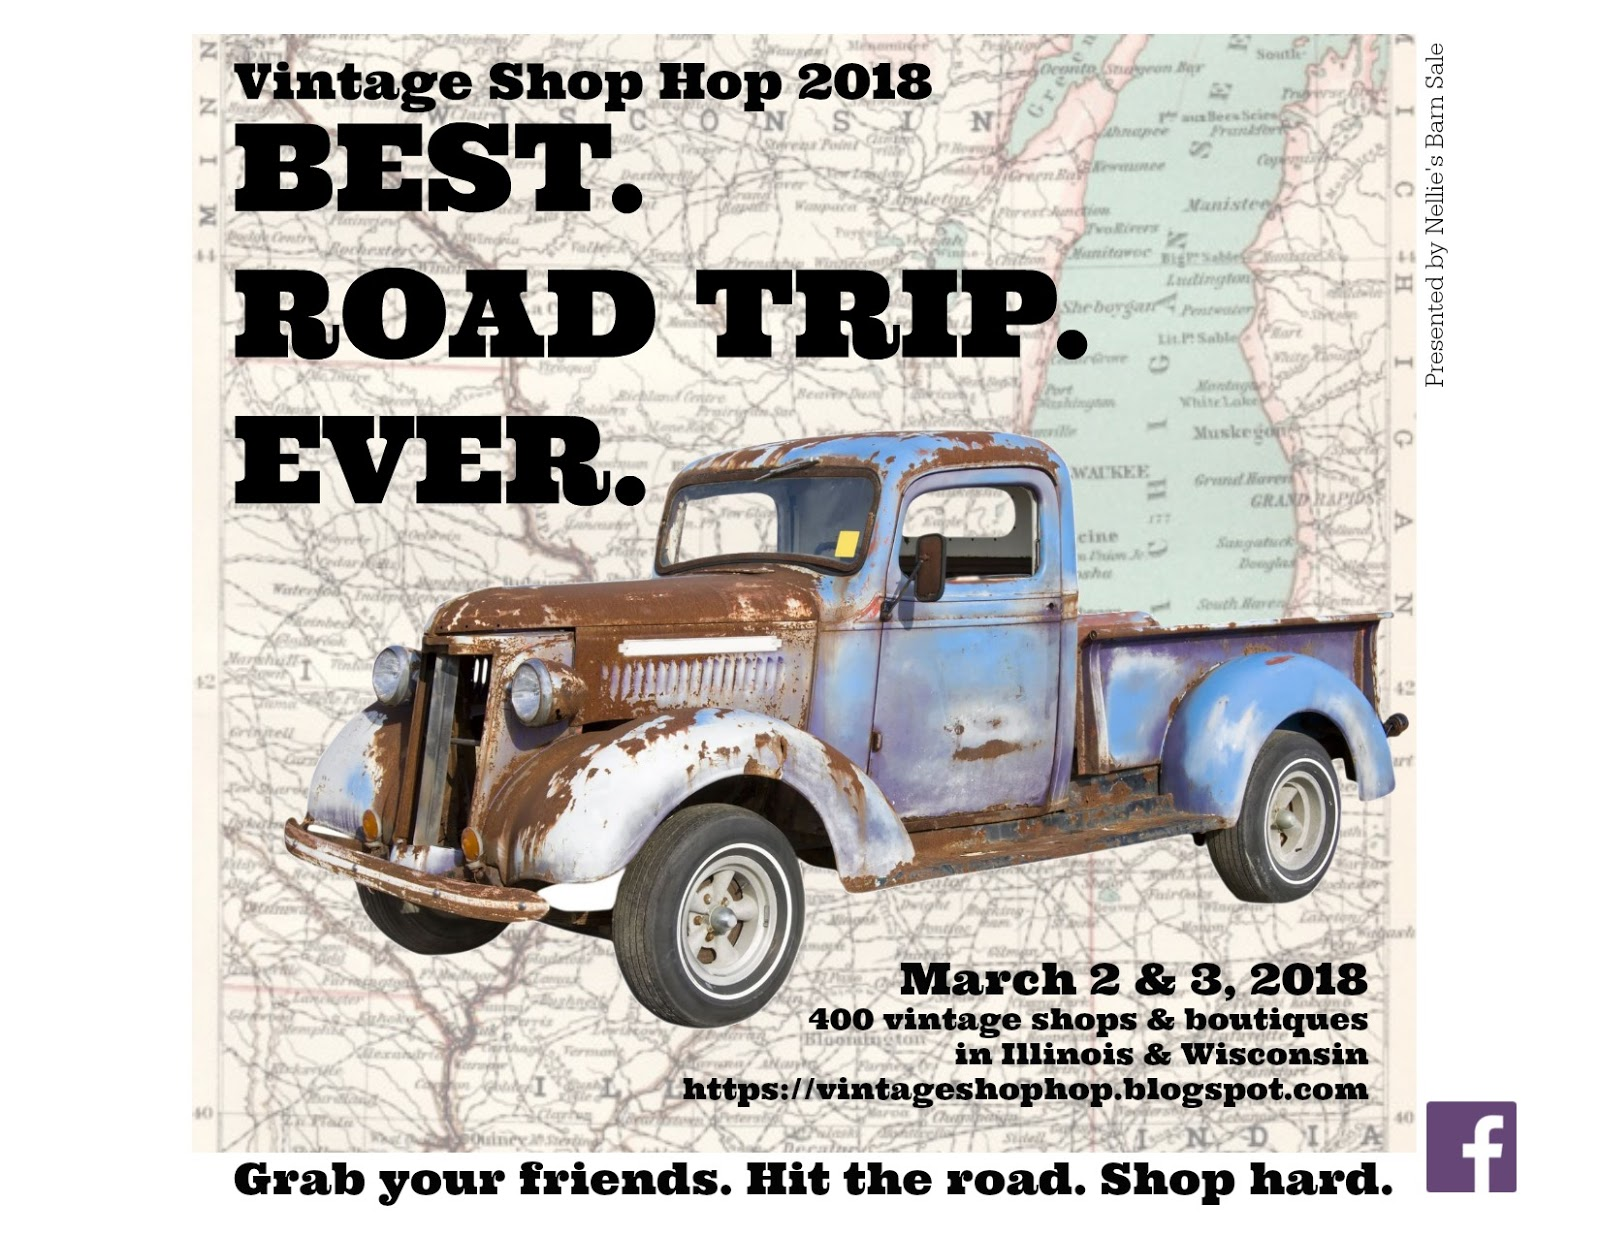 Vintage Shop Hop: 2018 SHOP HOP LIST